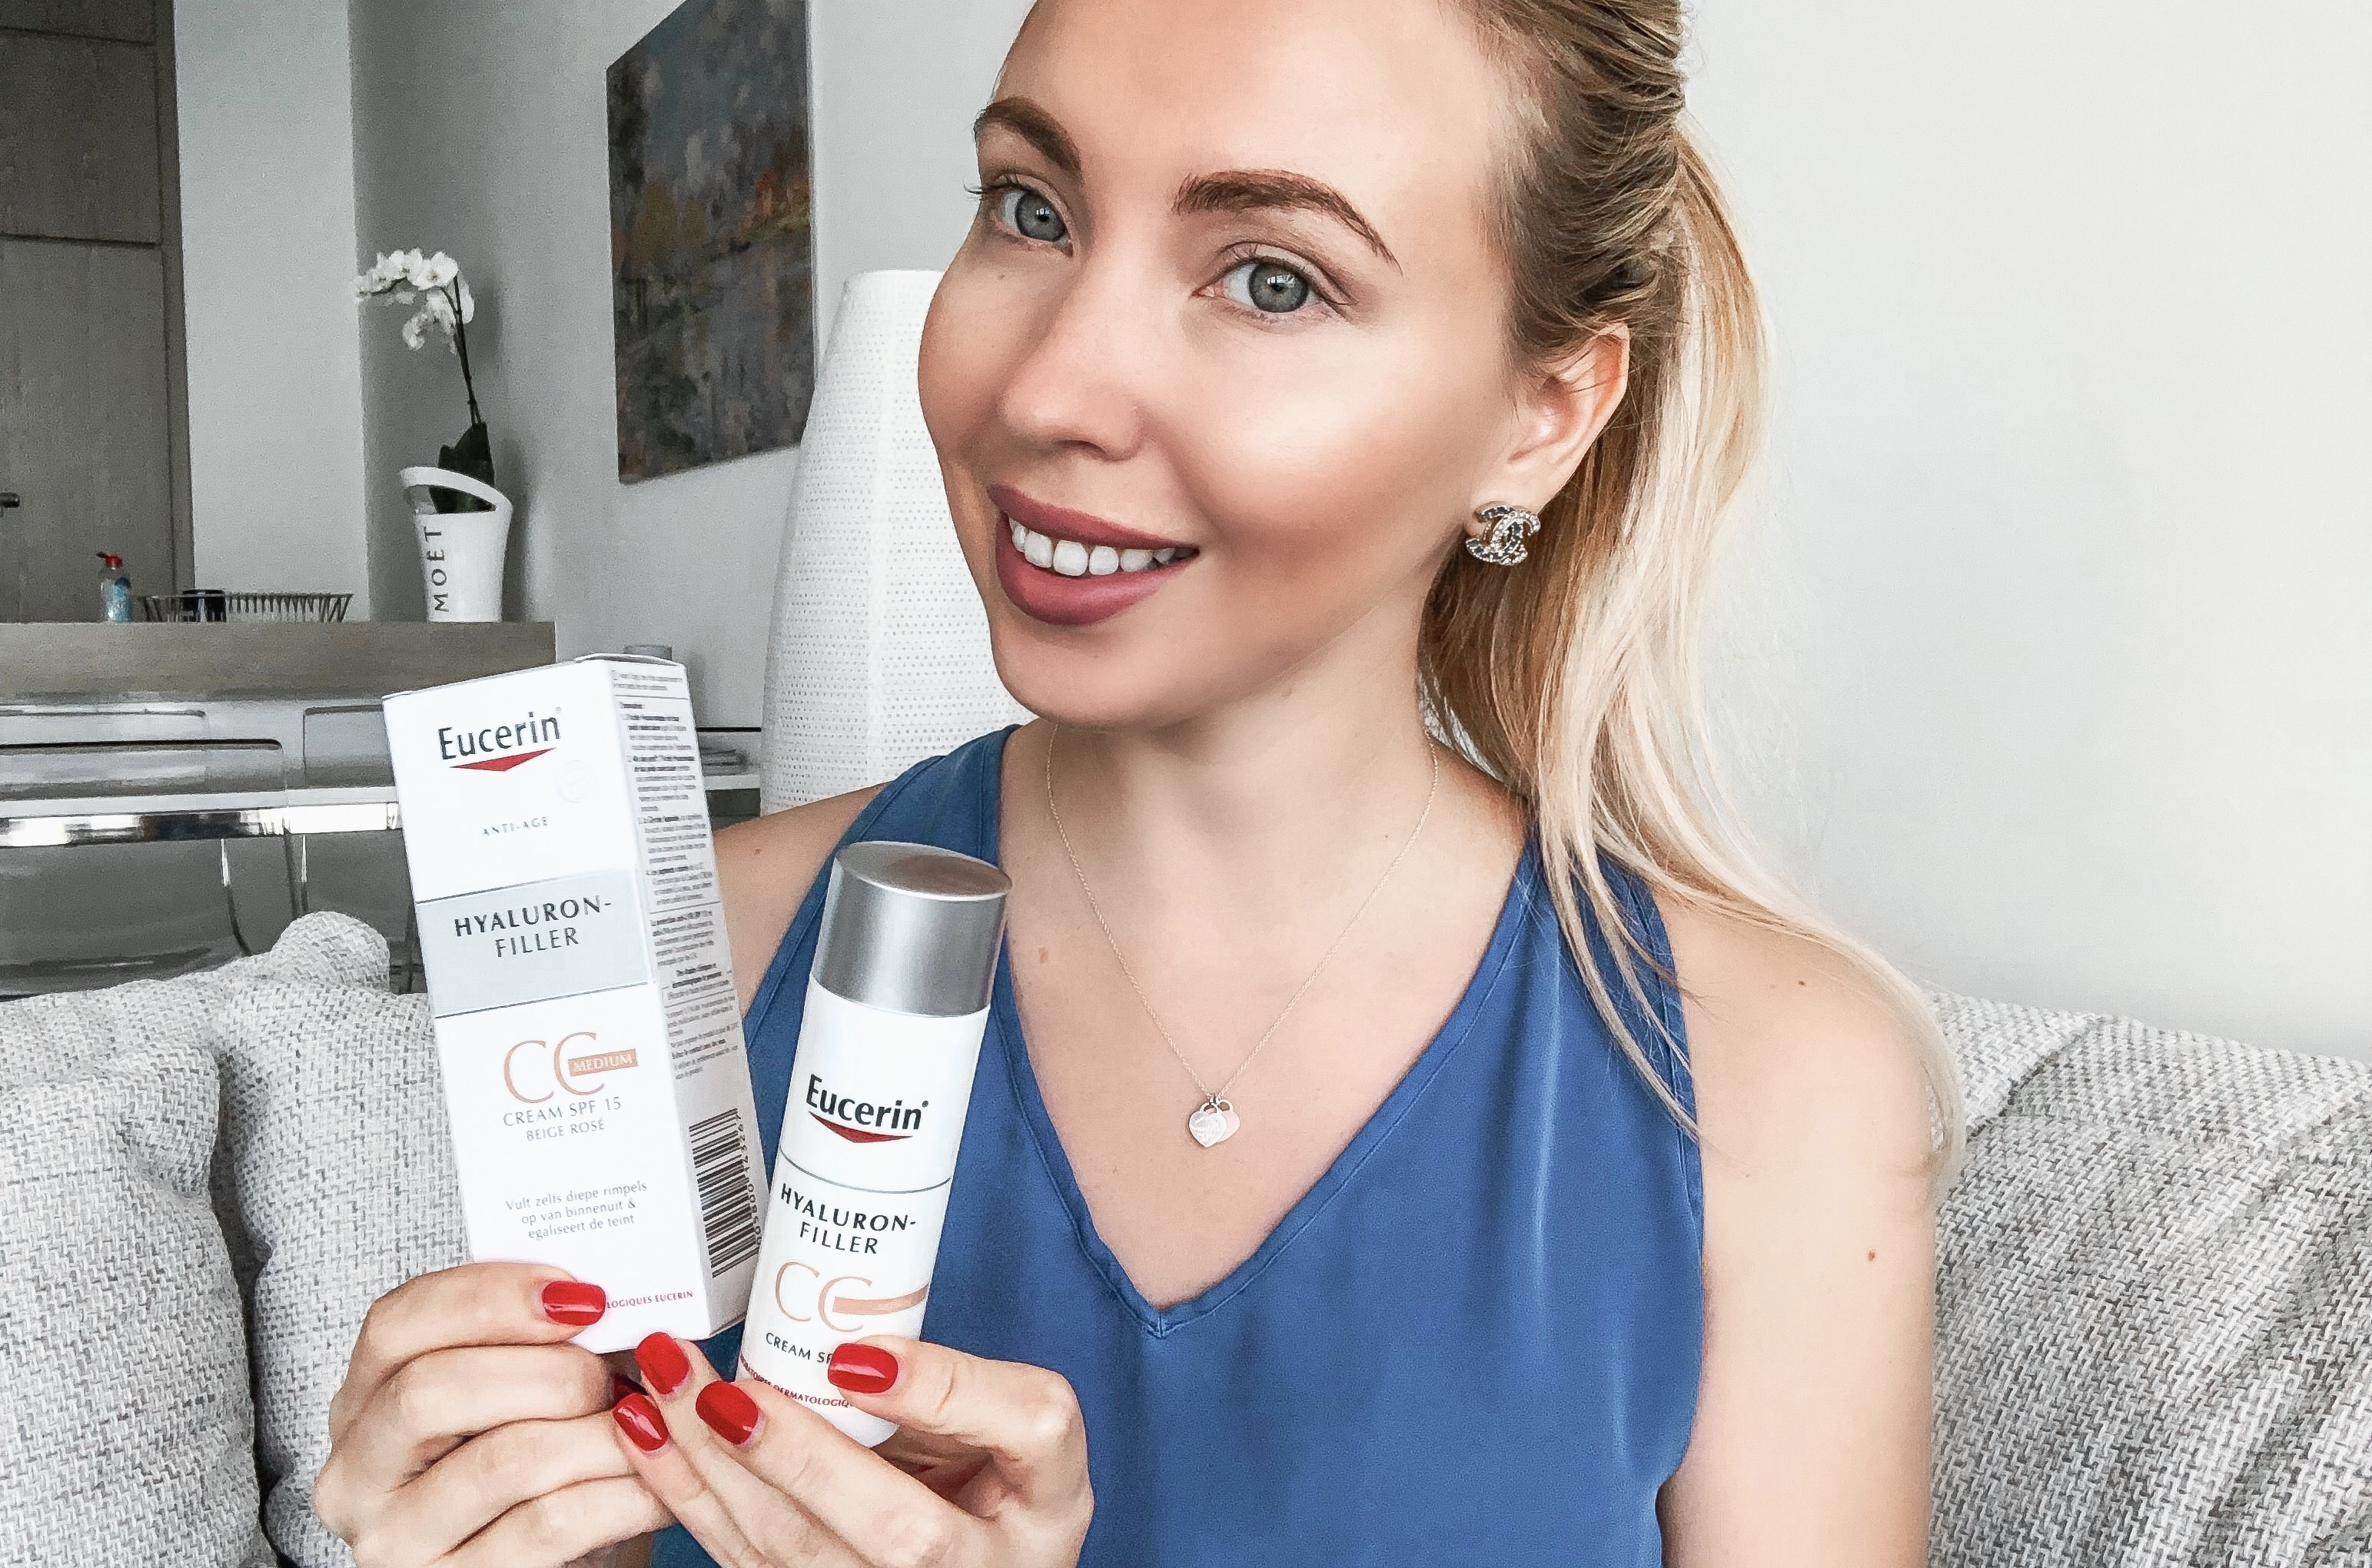 Eucerin Hyaluron-Filler CC, REVIEW